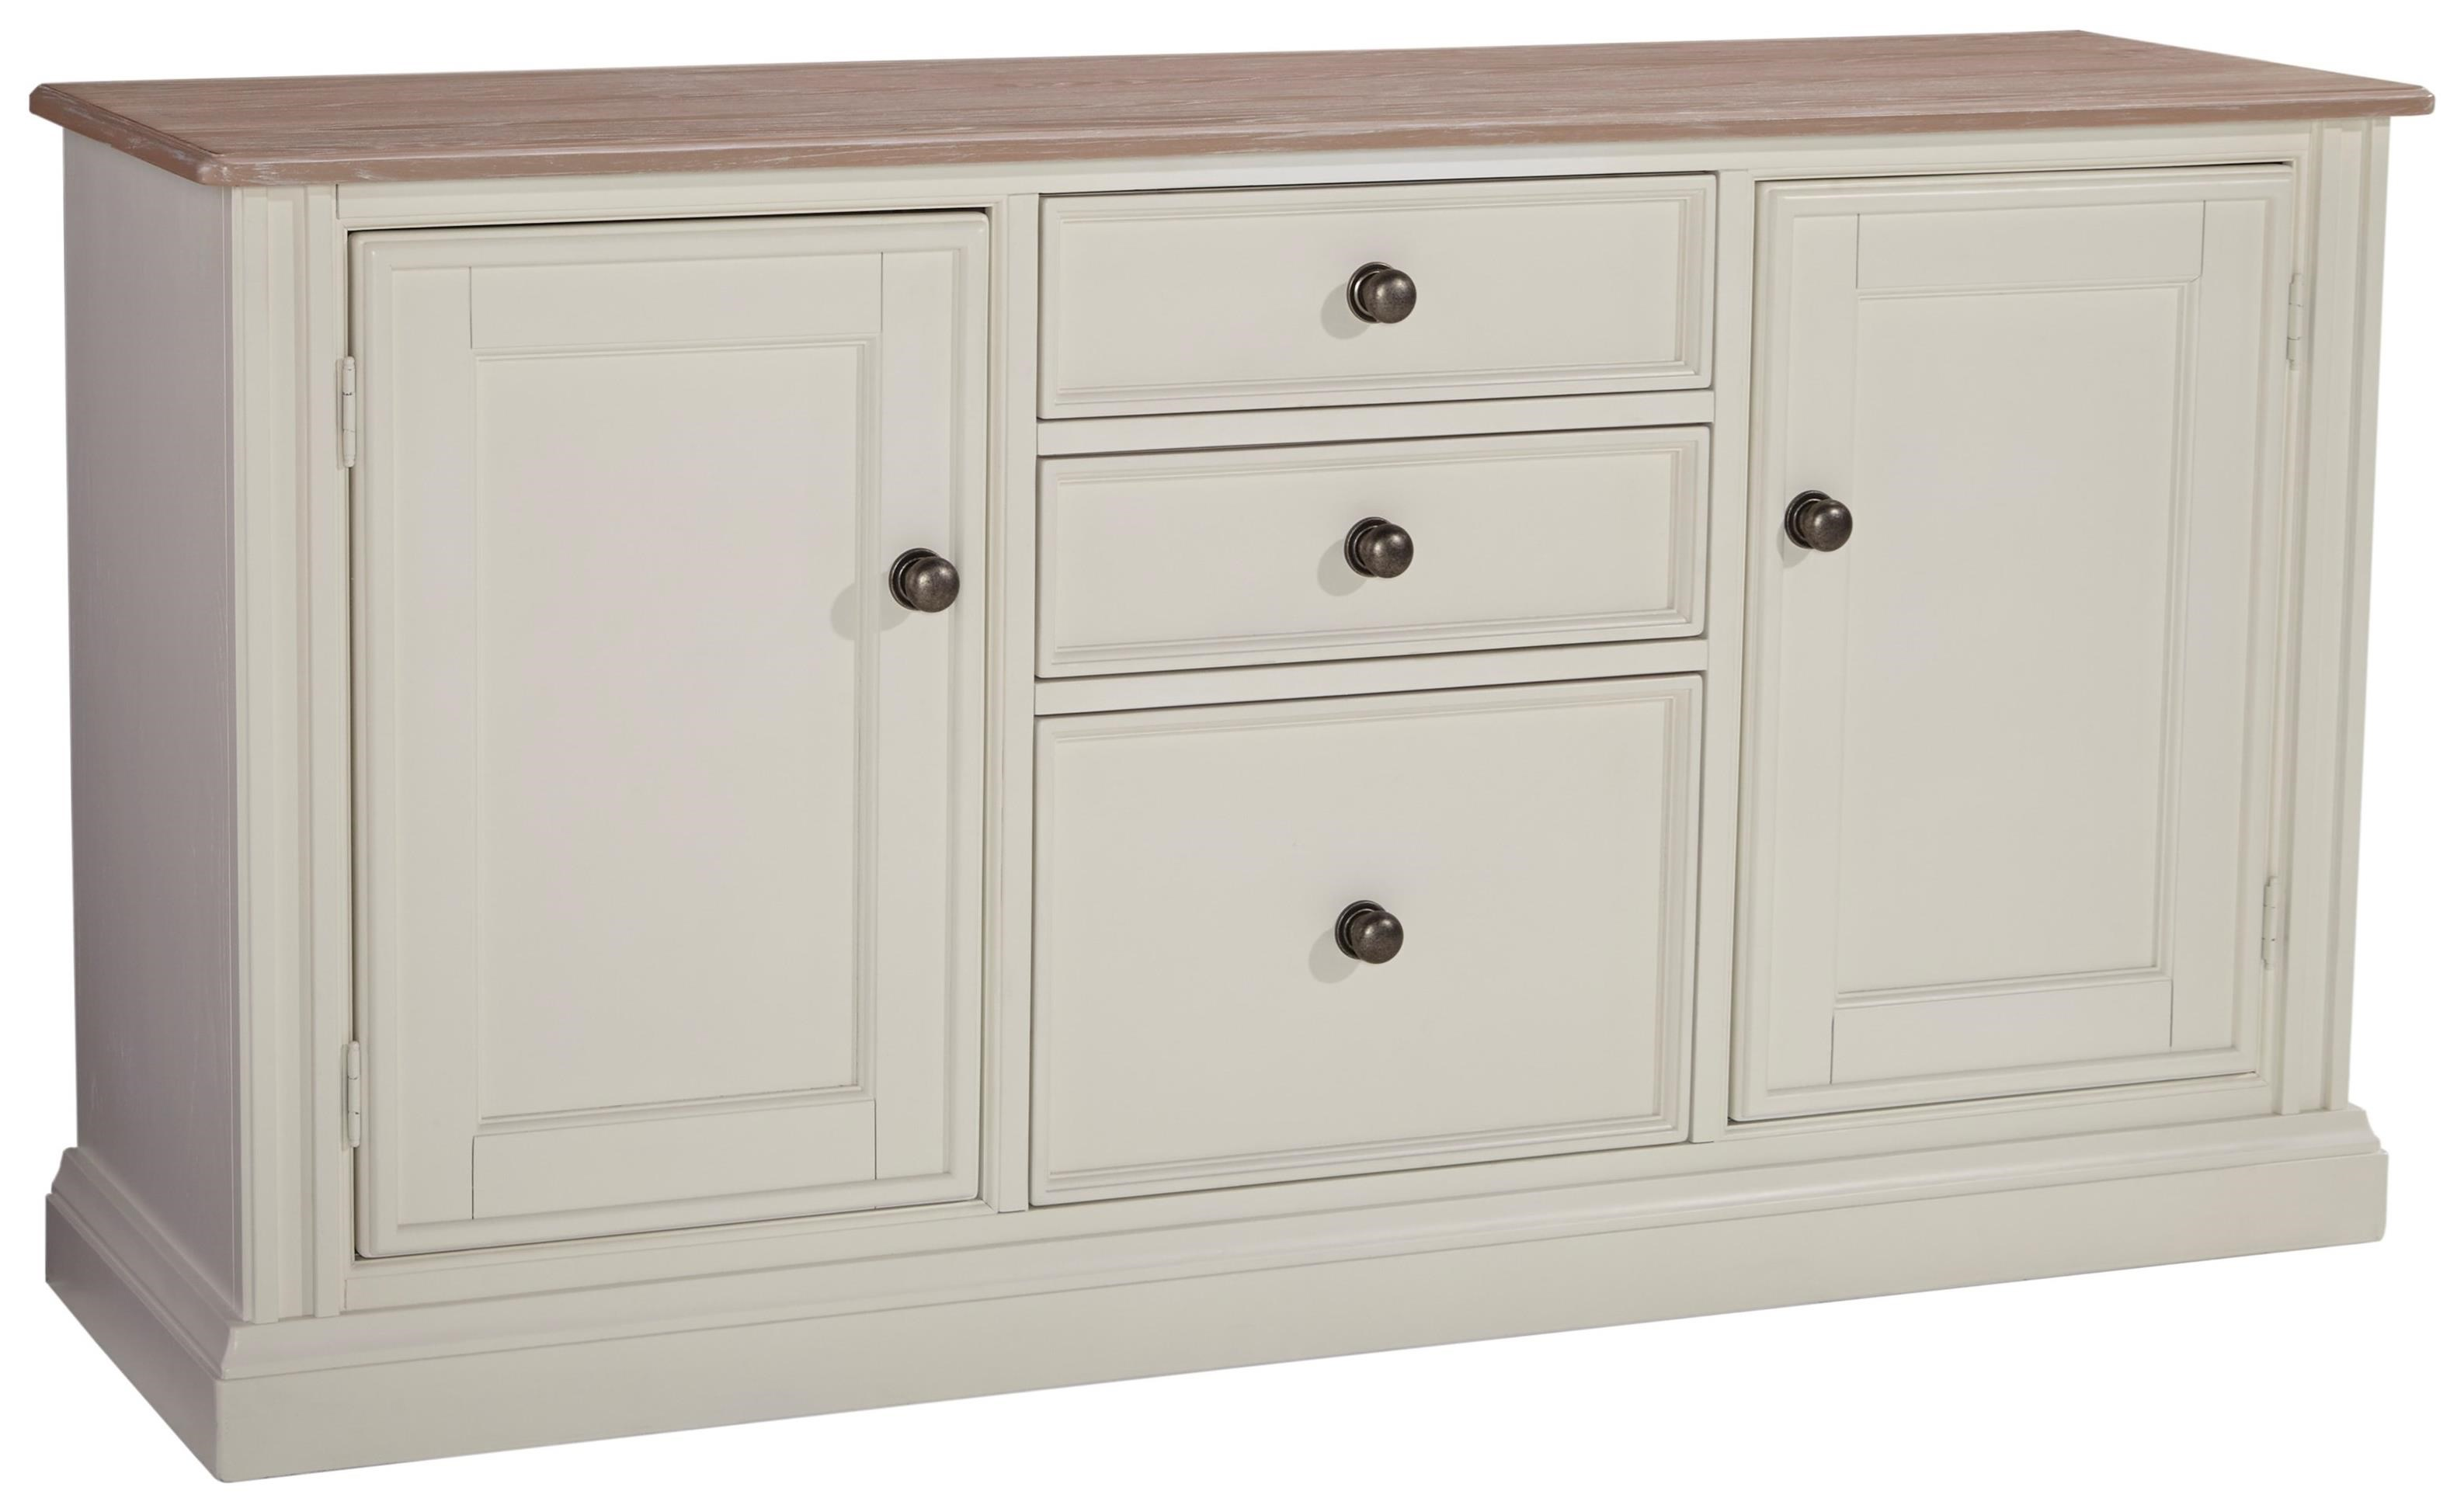 Signature Design by Ashley Sarvanny Large Credenza - Item Number: H583-46